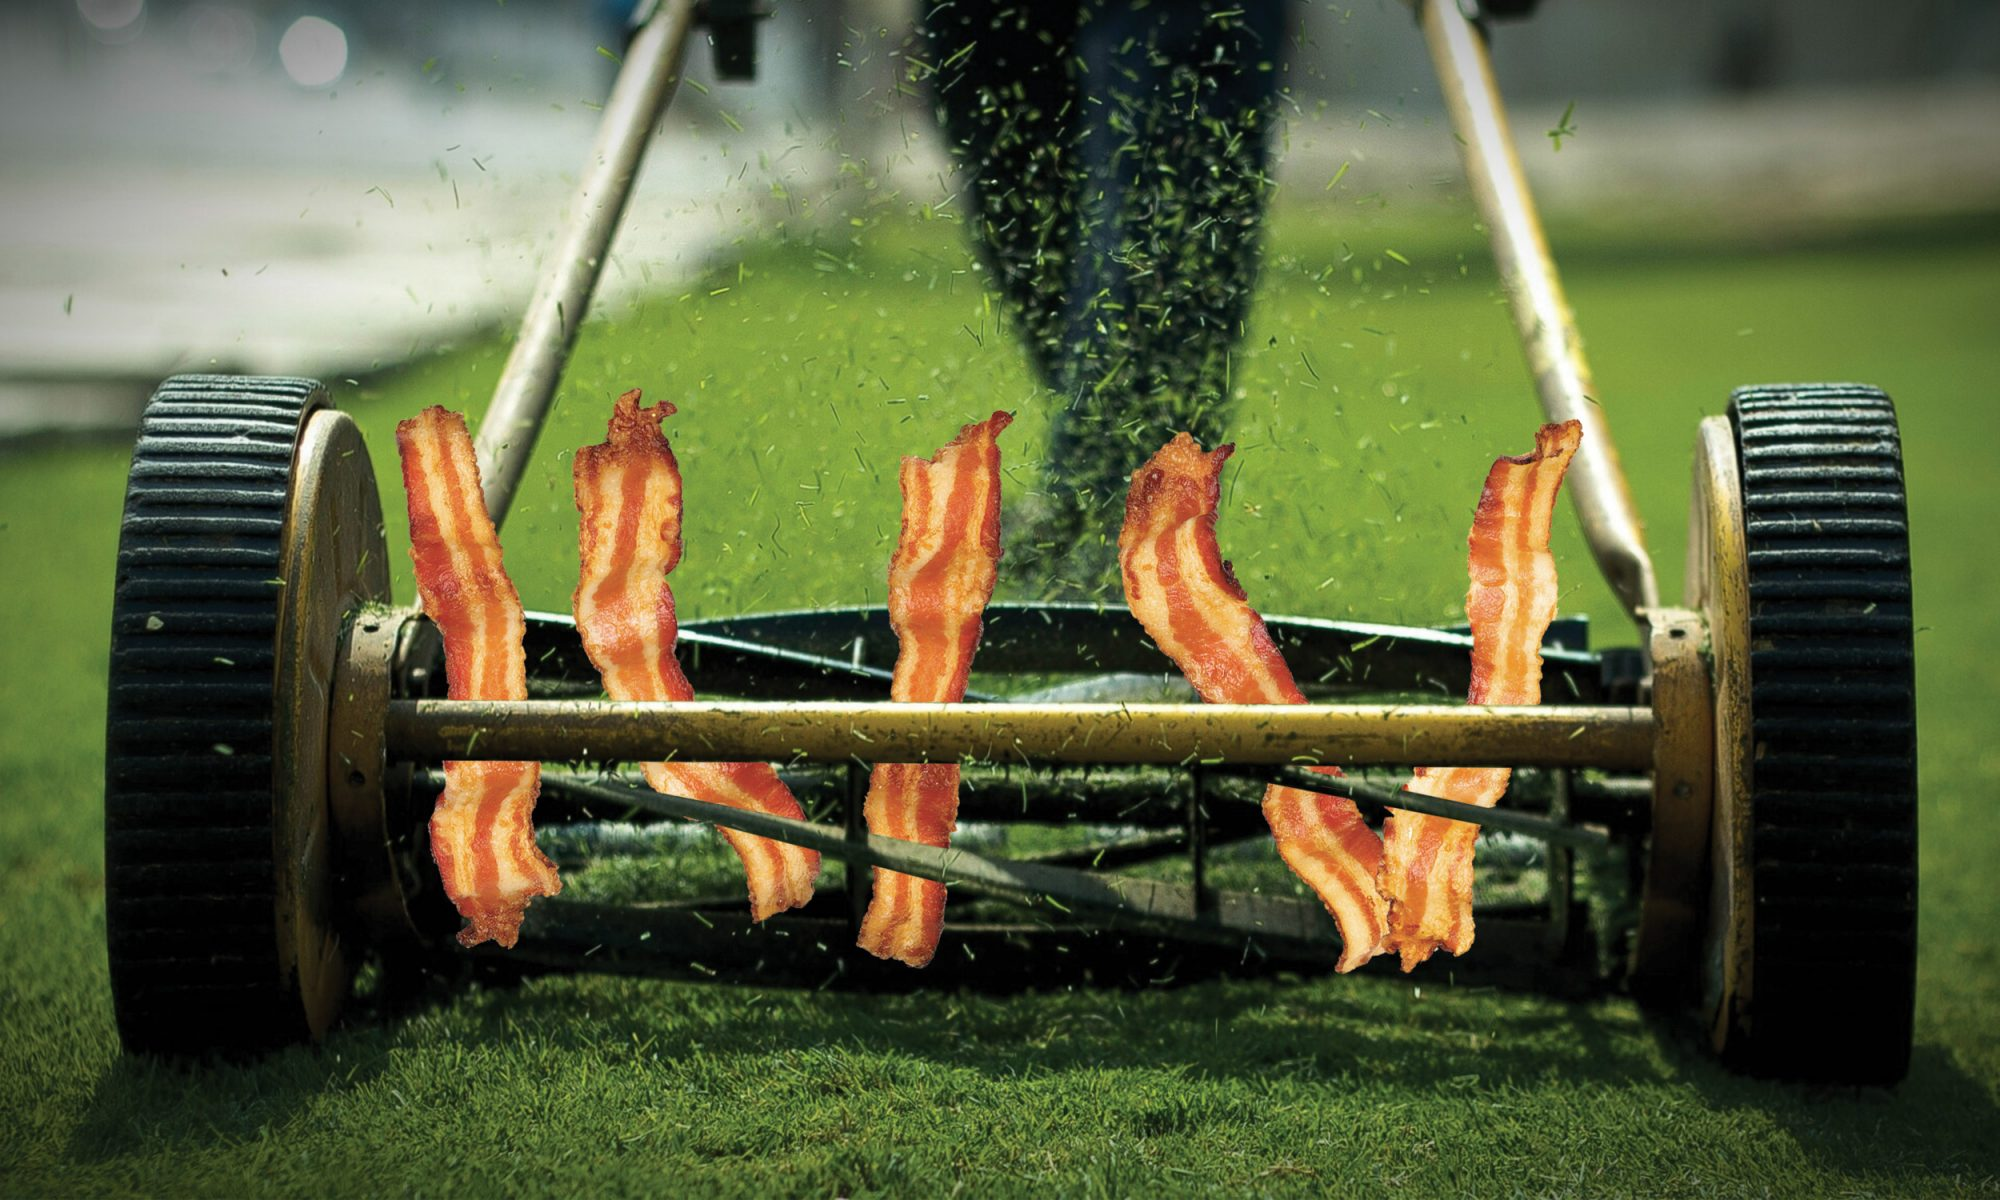 EC: How to Cook Bacon With a Lawnmower